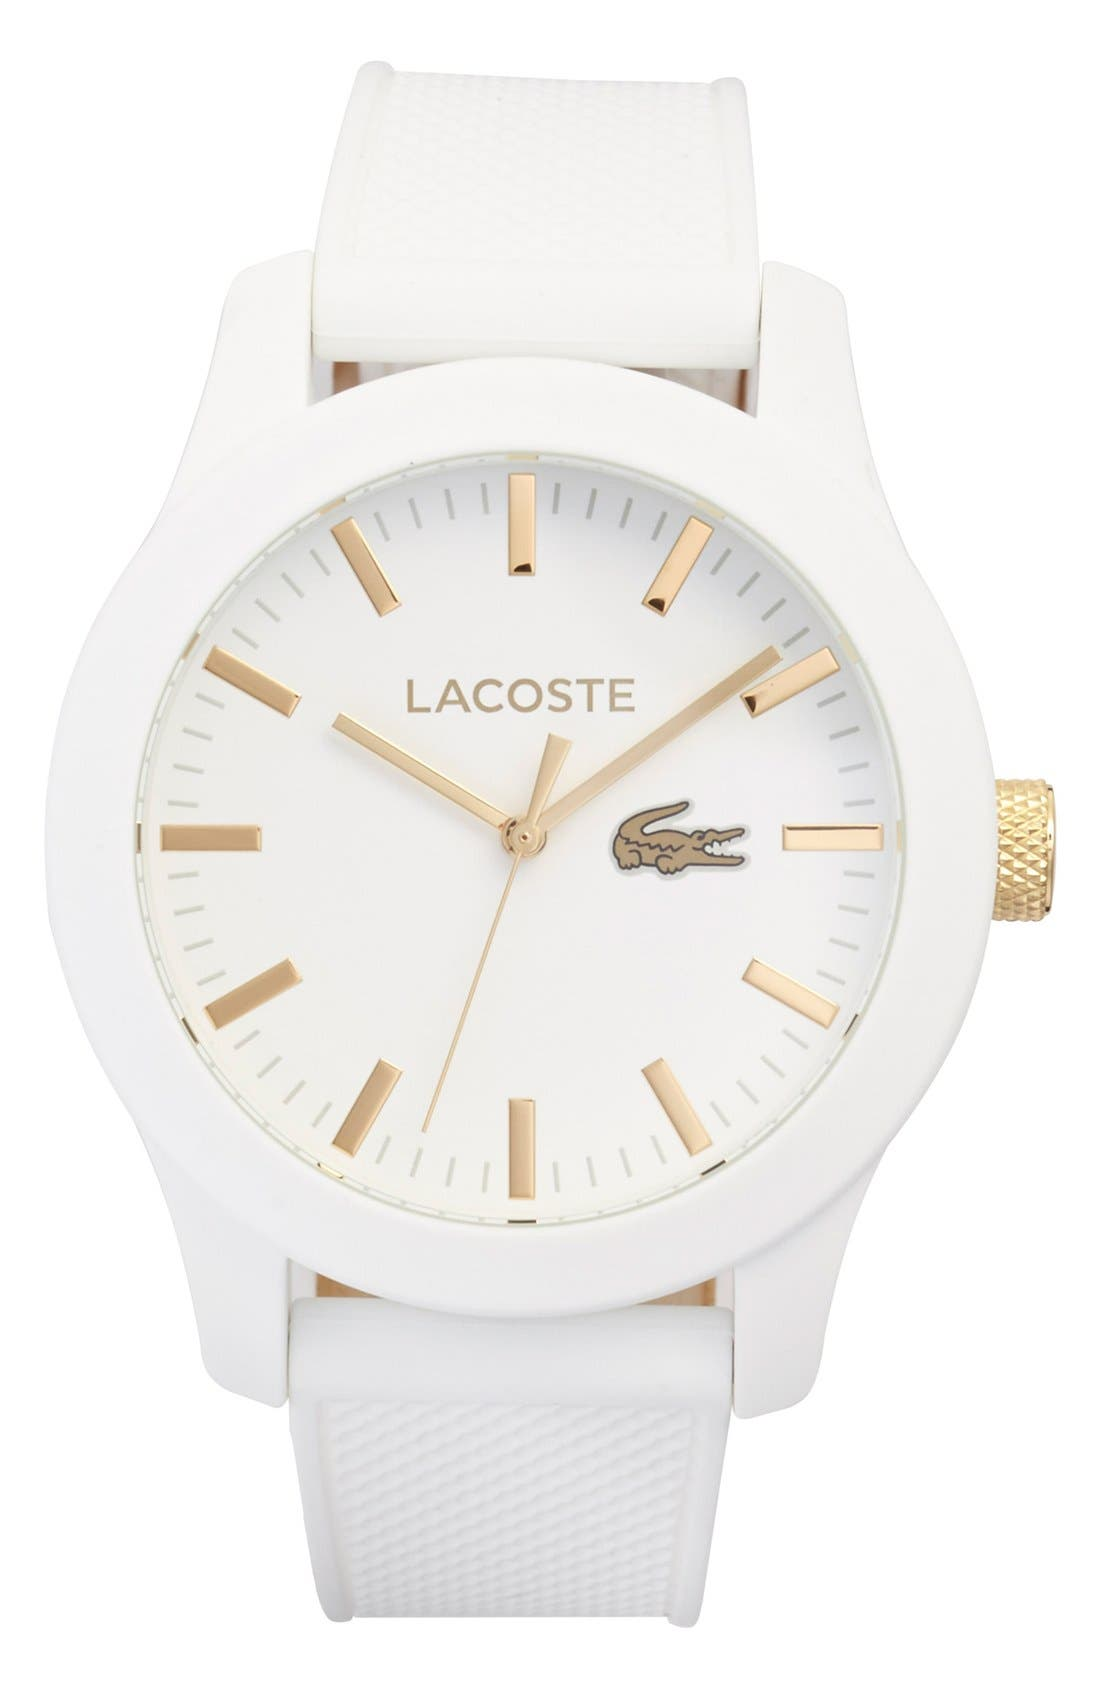 Main Image - Lacoste '12.12' Watch, 43mm